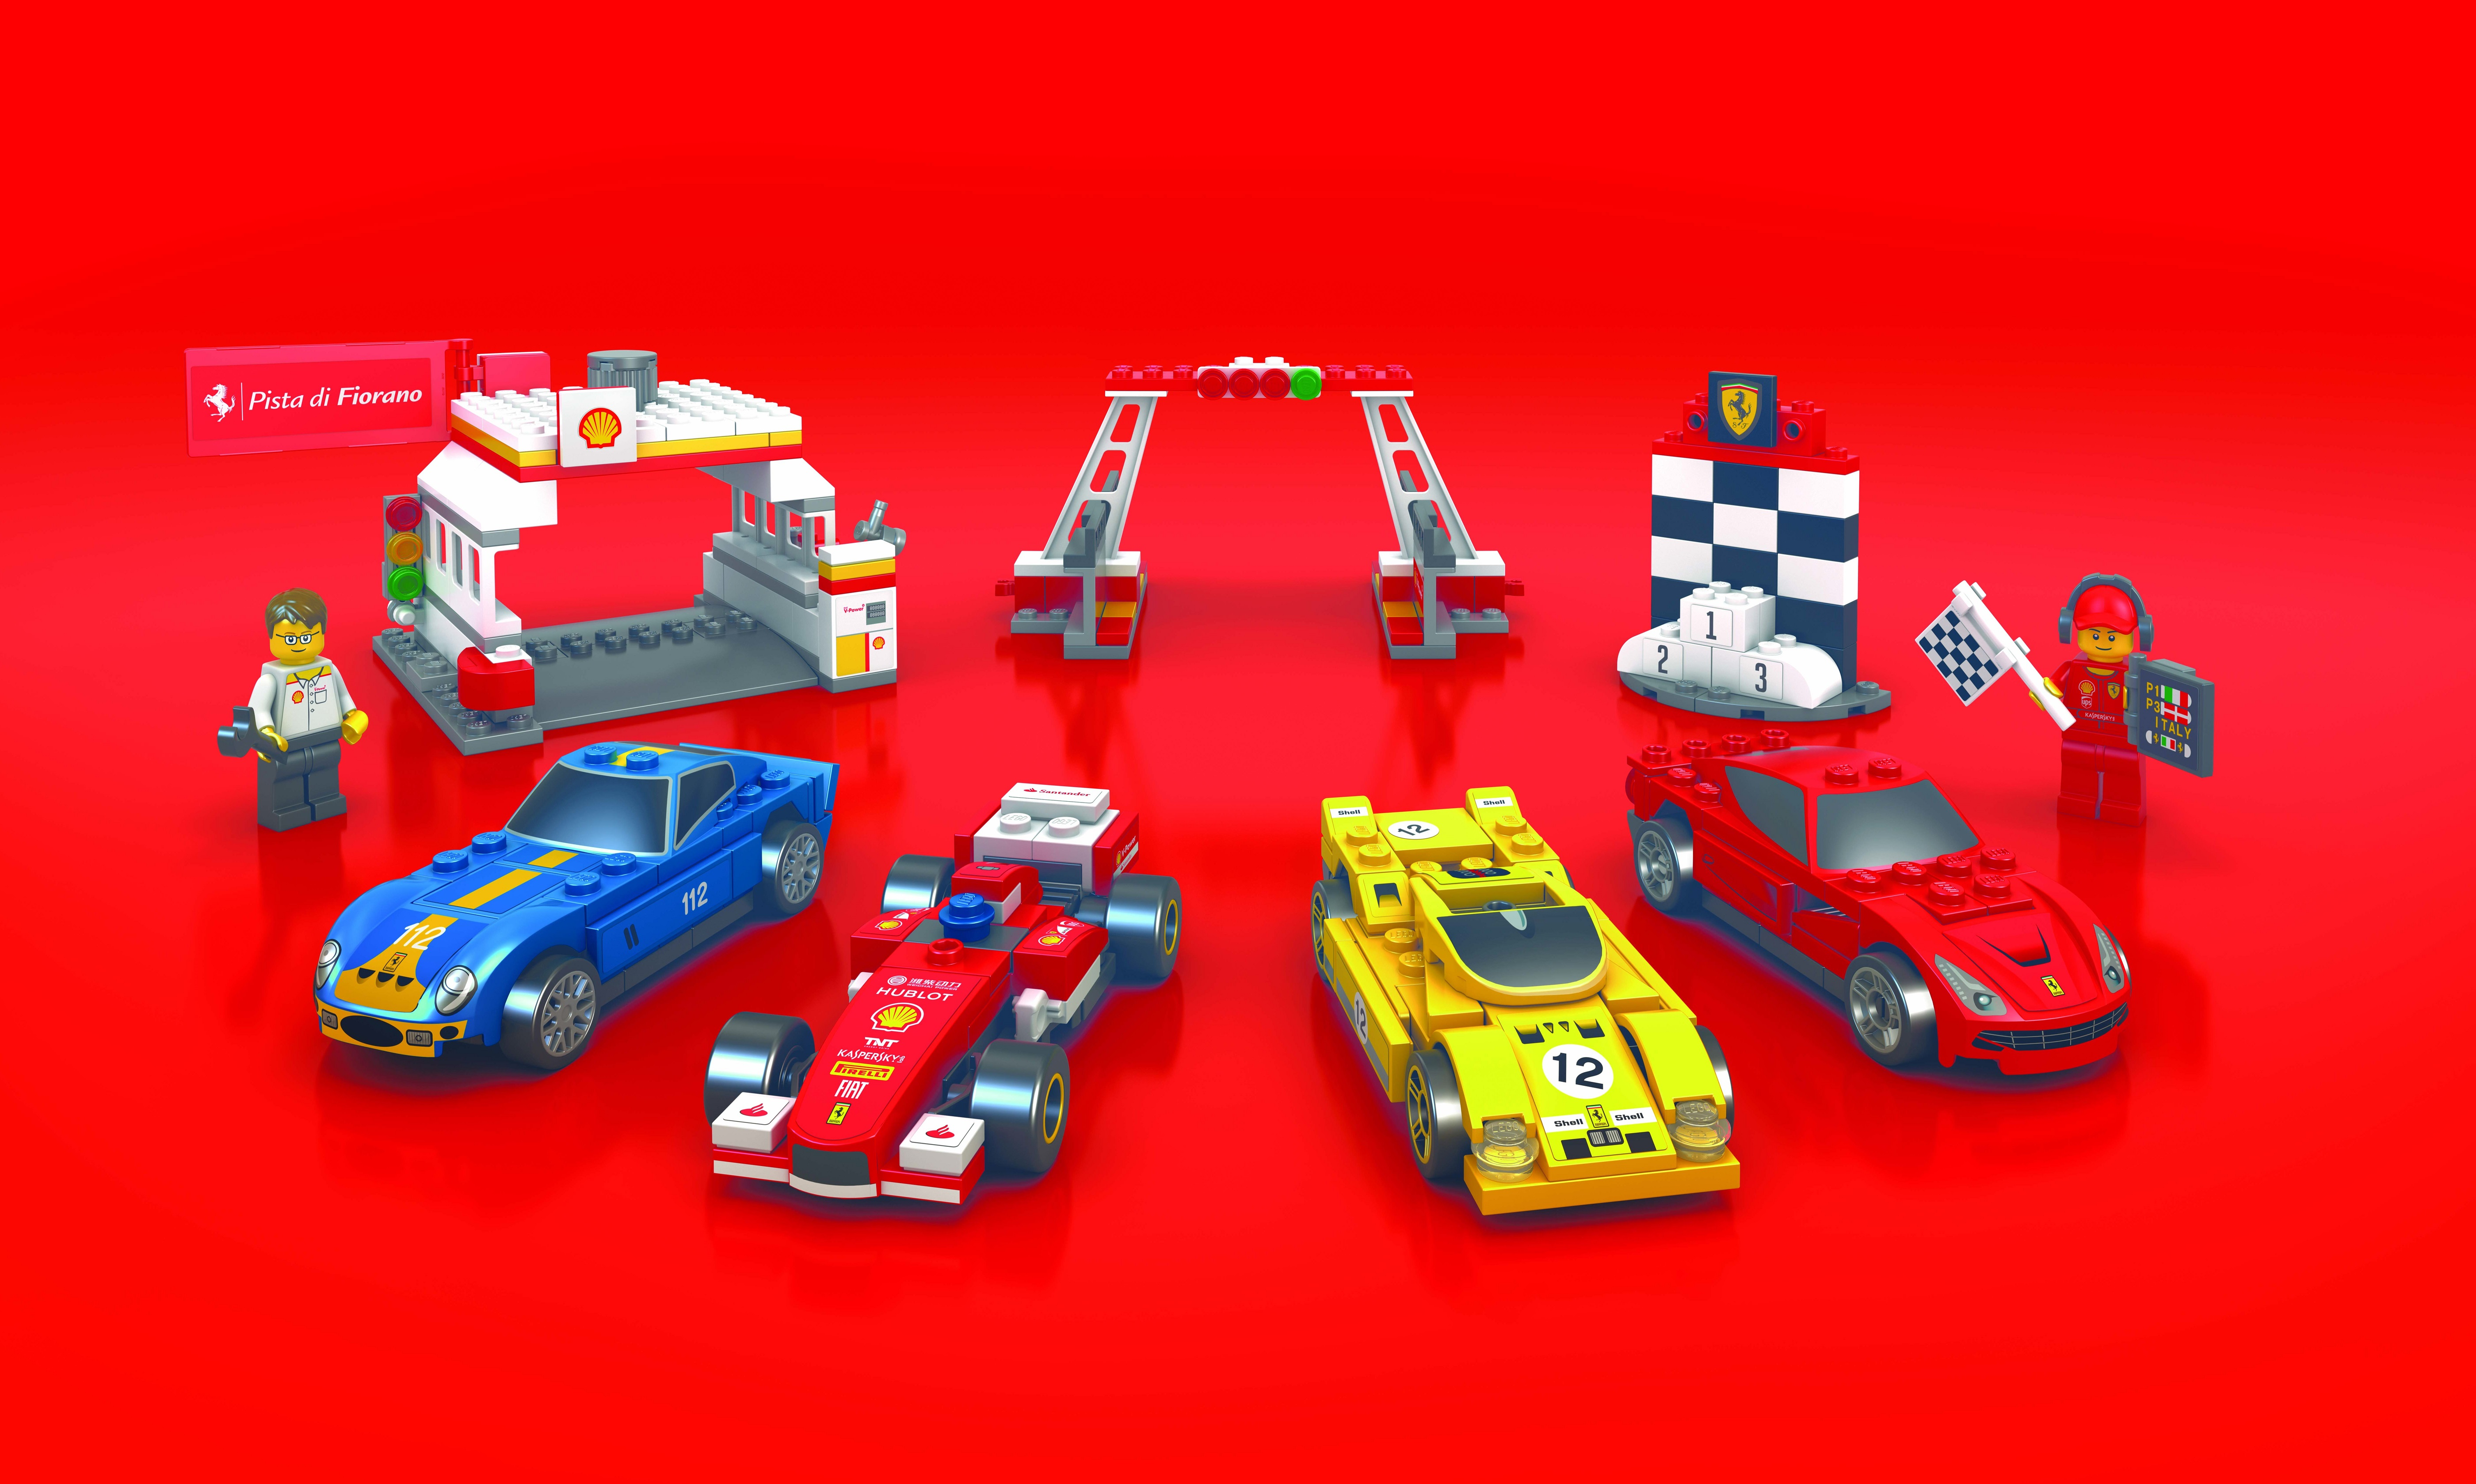 Second Wave of Limited Edition Shell LEGO sets make their